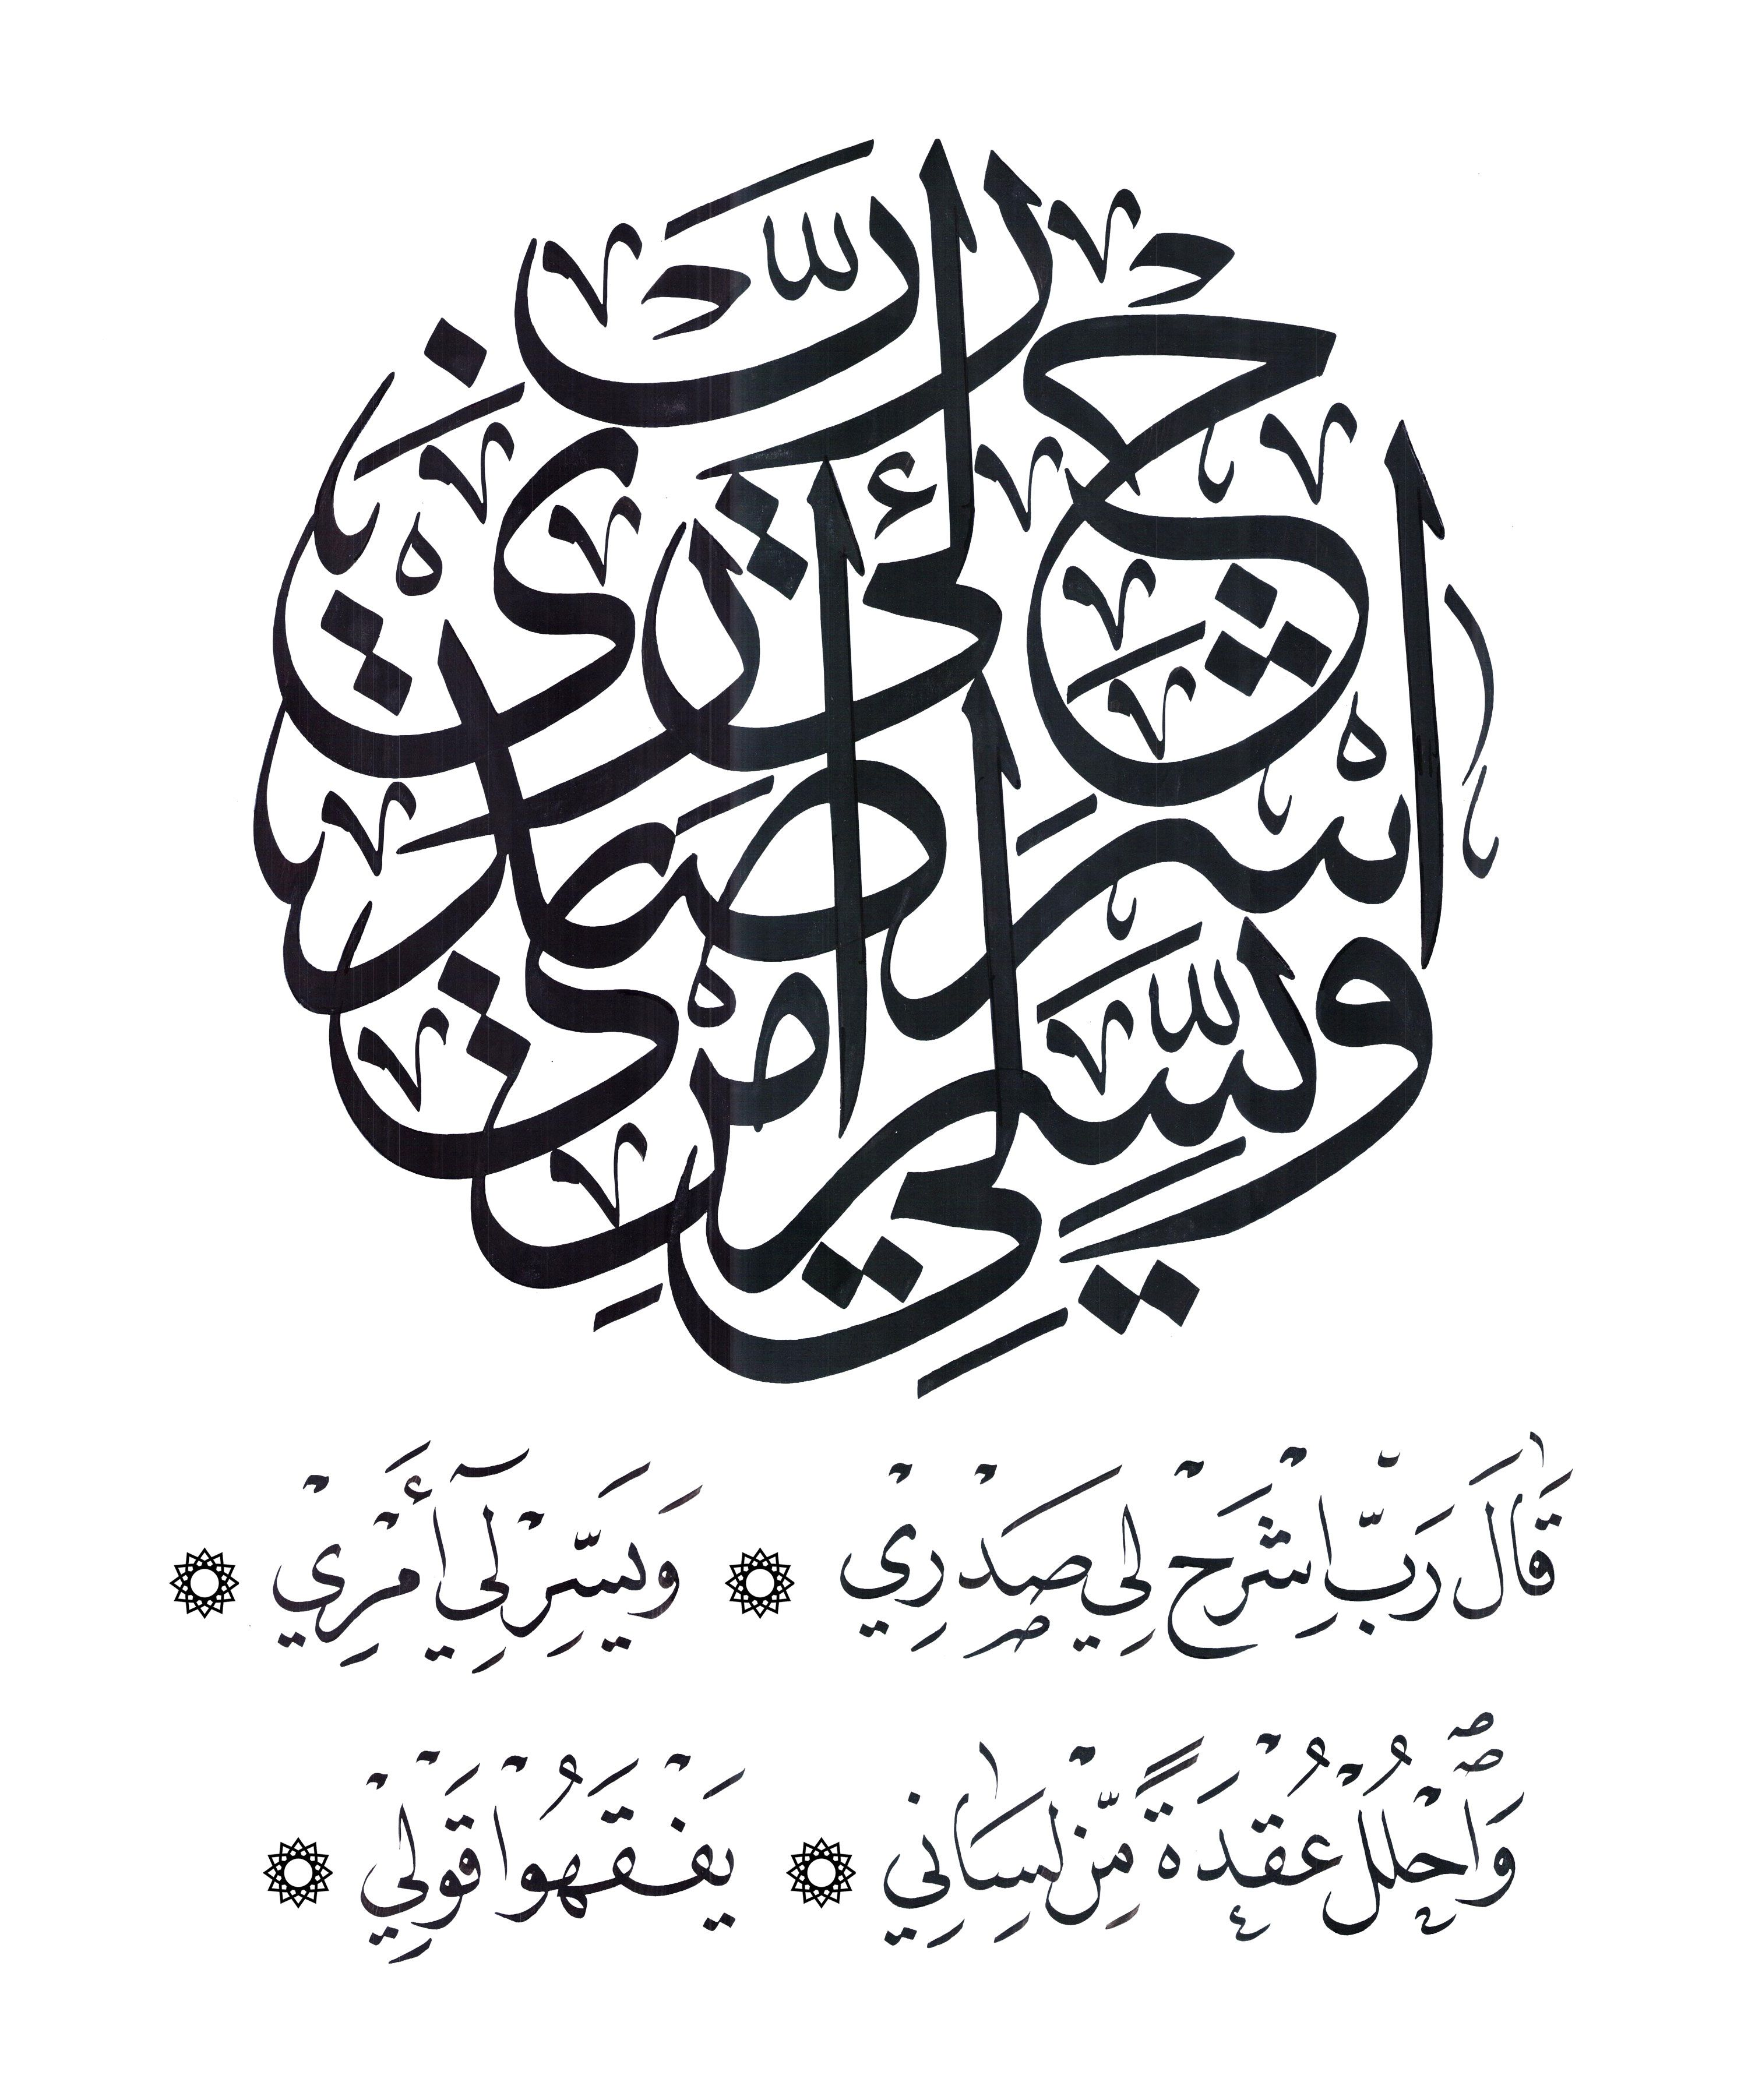 Pin by Elham Moghazy on Quran in 2019 | Islamic calligraphy